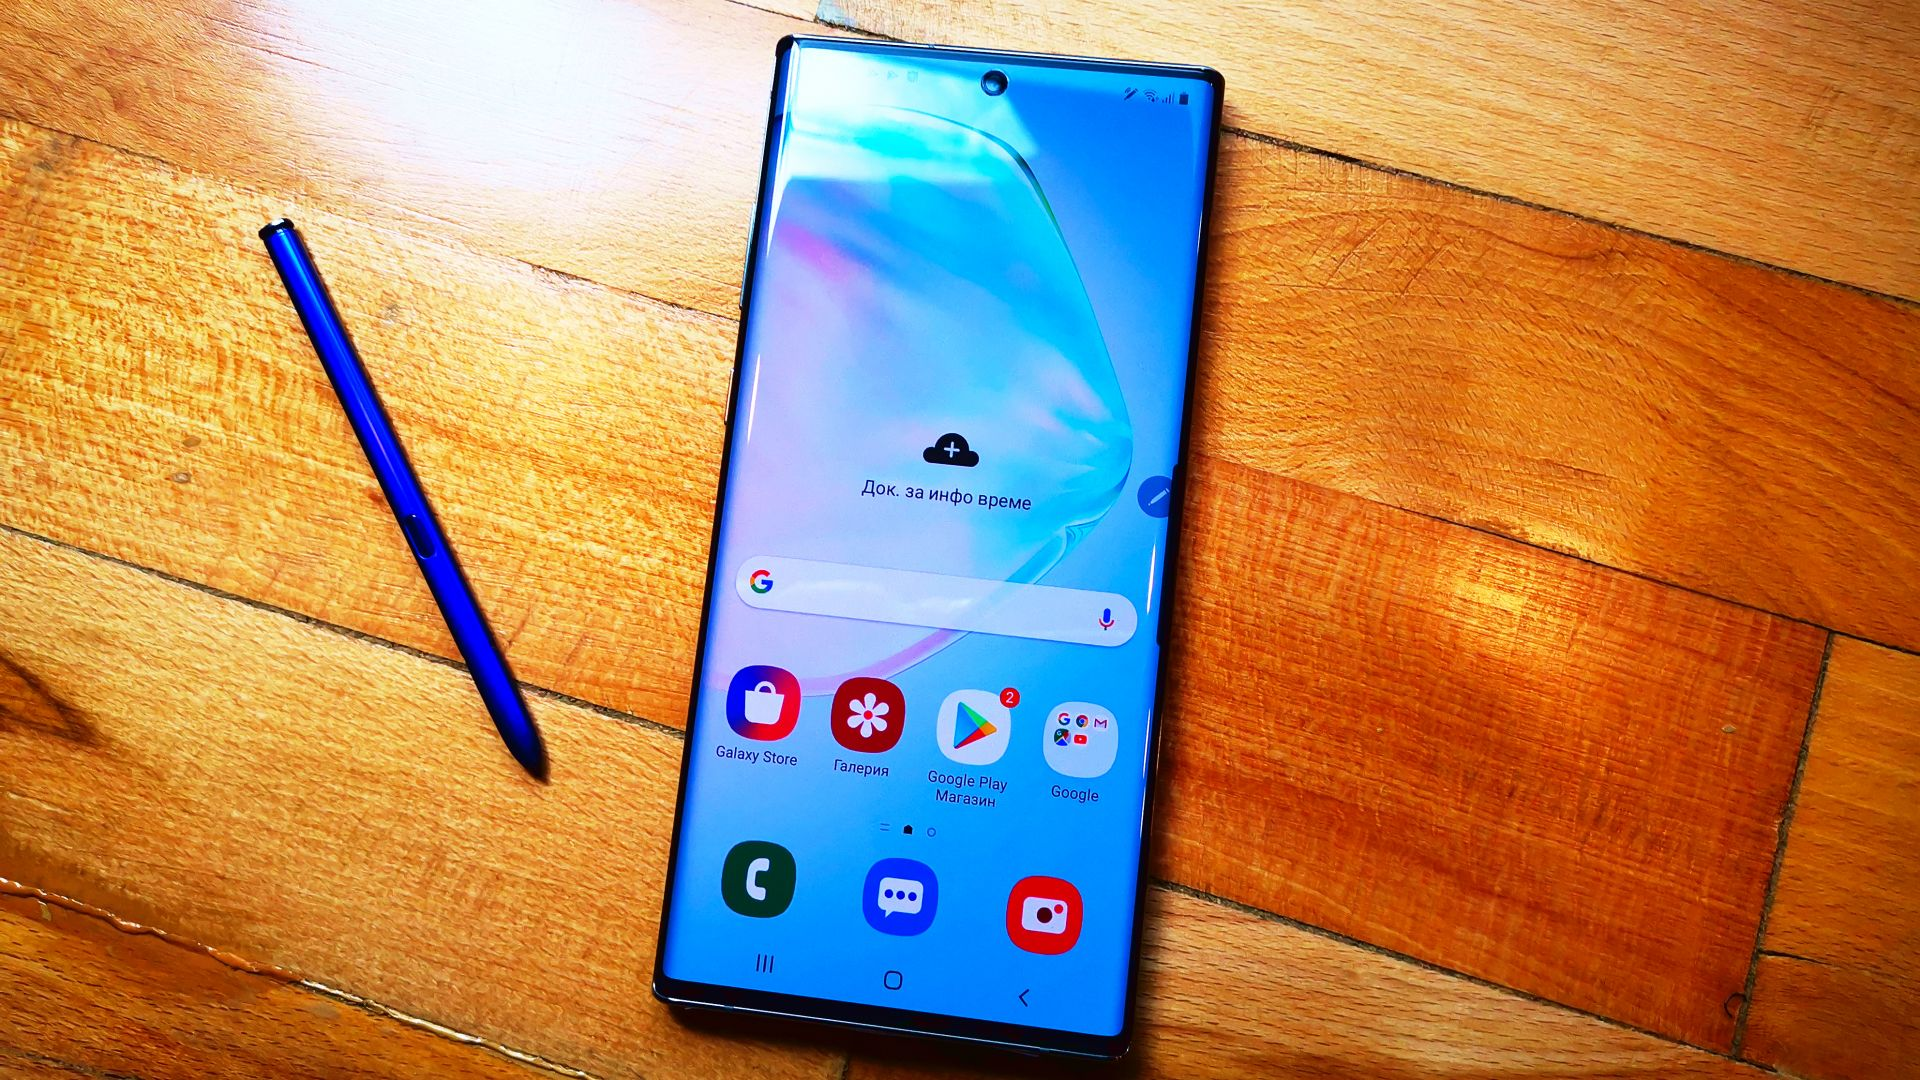 Samsung Galaxy Note10+ има красив дизайн и функционален стилус